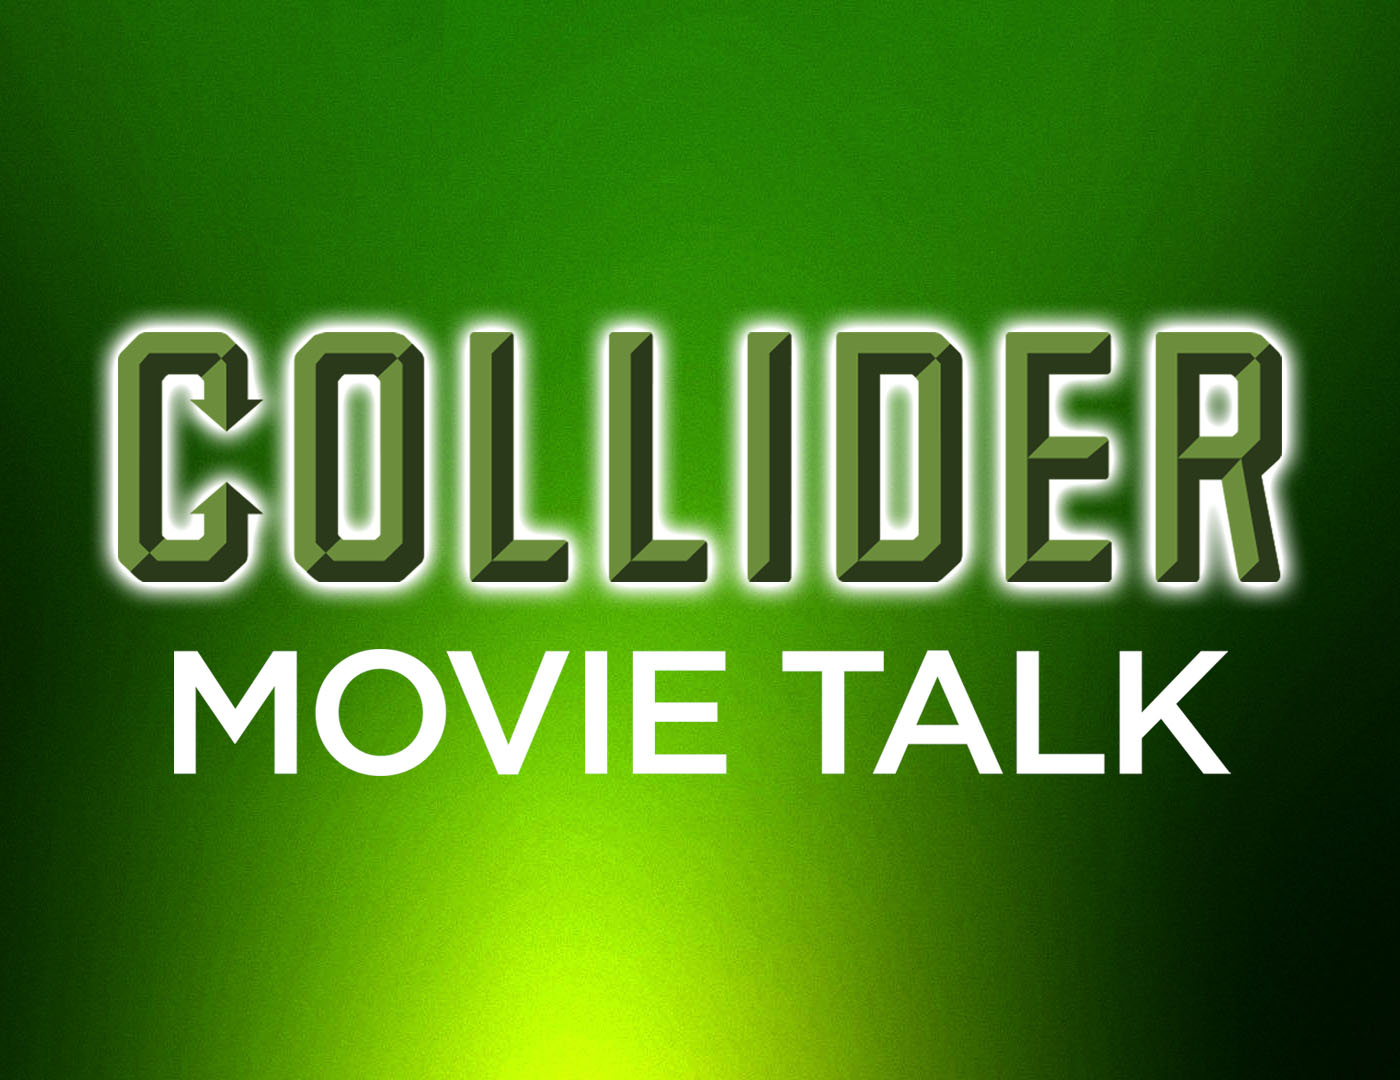 Super Bowl Trailers 2017 Review - Collider Movie Talk